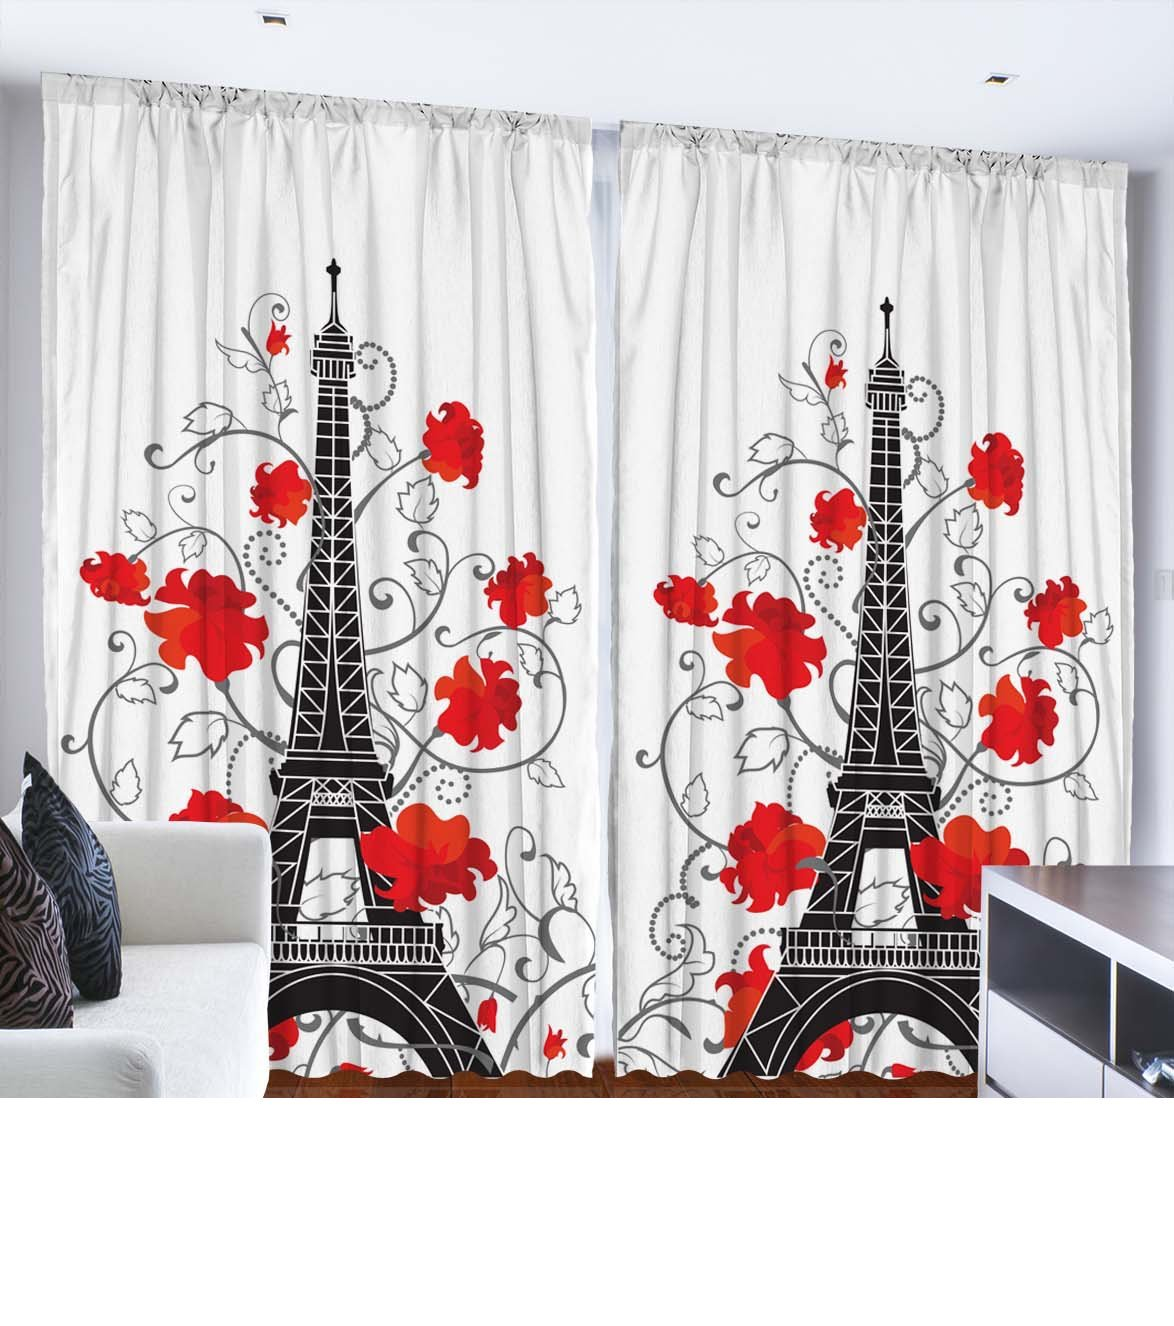 Amazon.com: Eiffel Tower Paris Decor For Bedroom Digital Print Curtains  City Decor Living Room Decorations Accessories French Style Paris Curtain  Two Panels ...